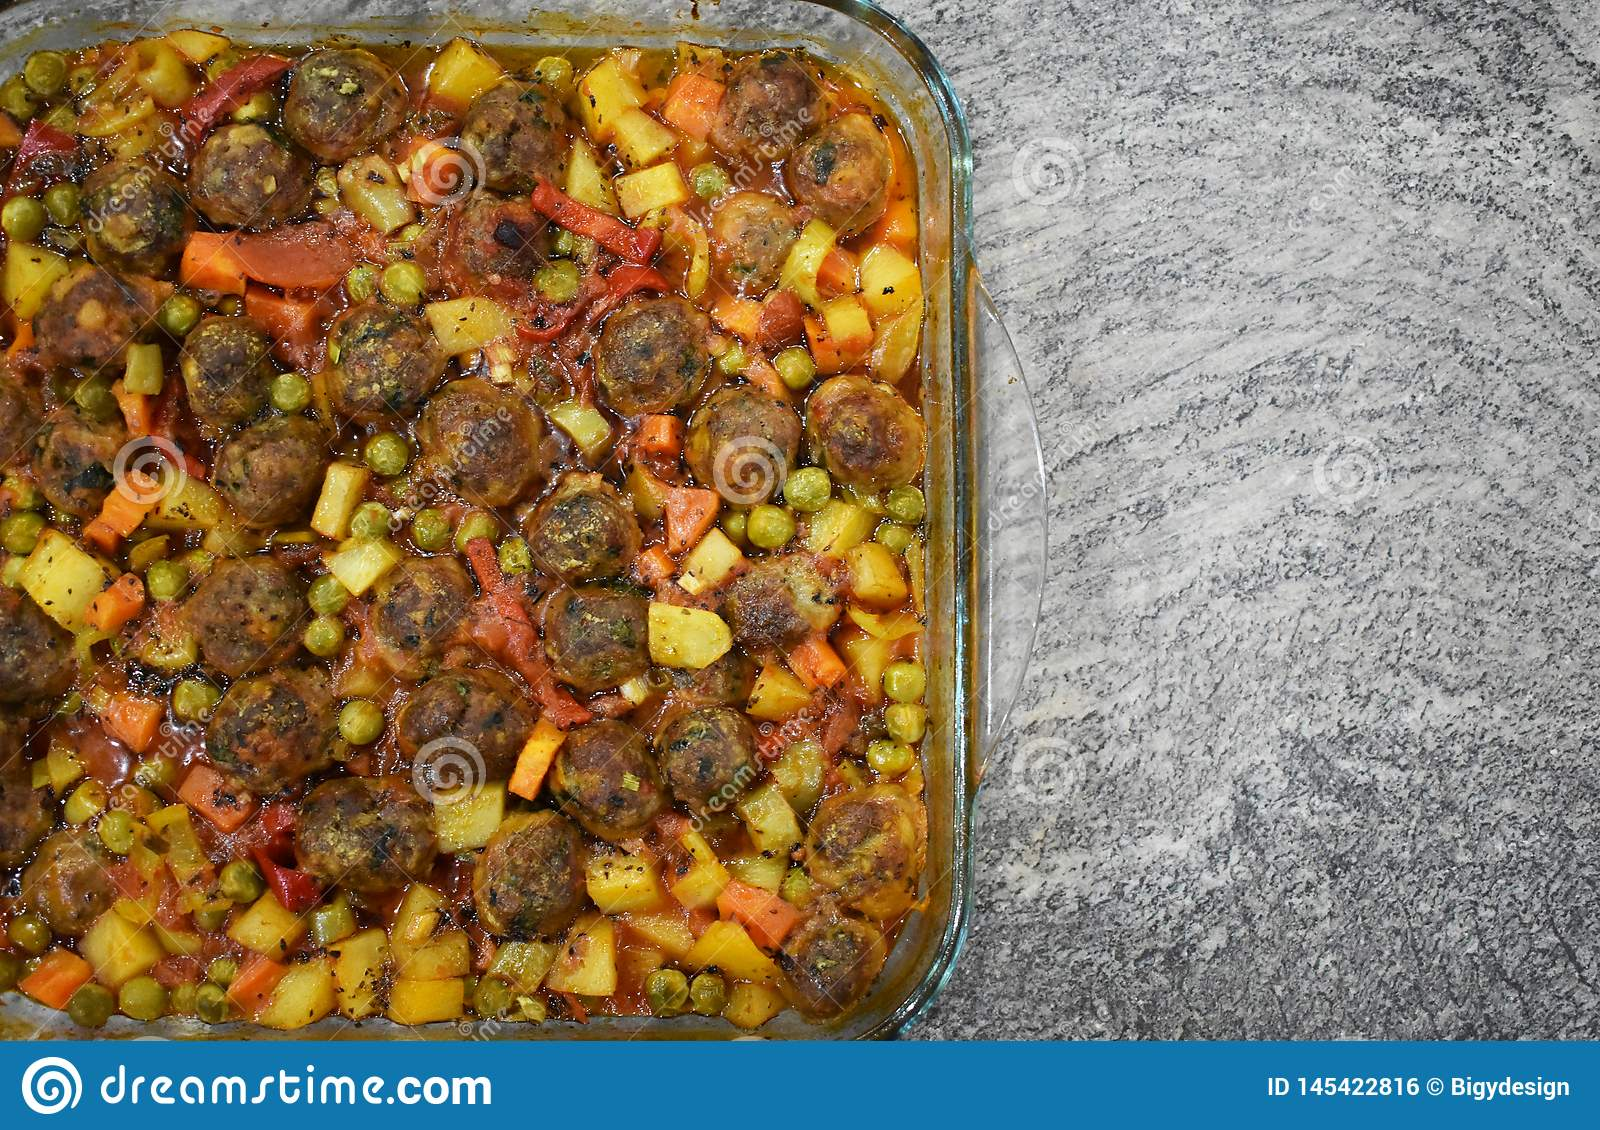 On marble floor, meatballs with vegetables, in glass baking dish